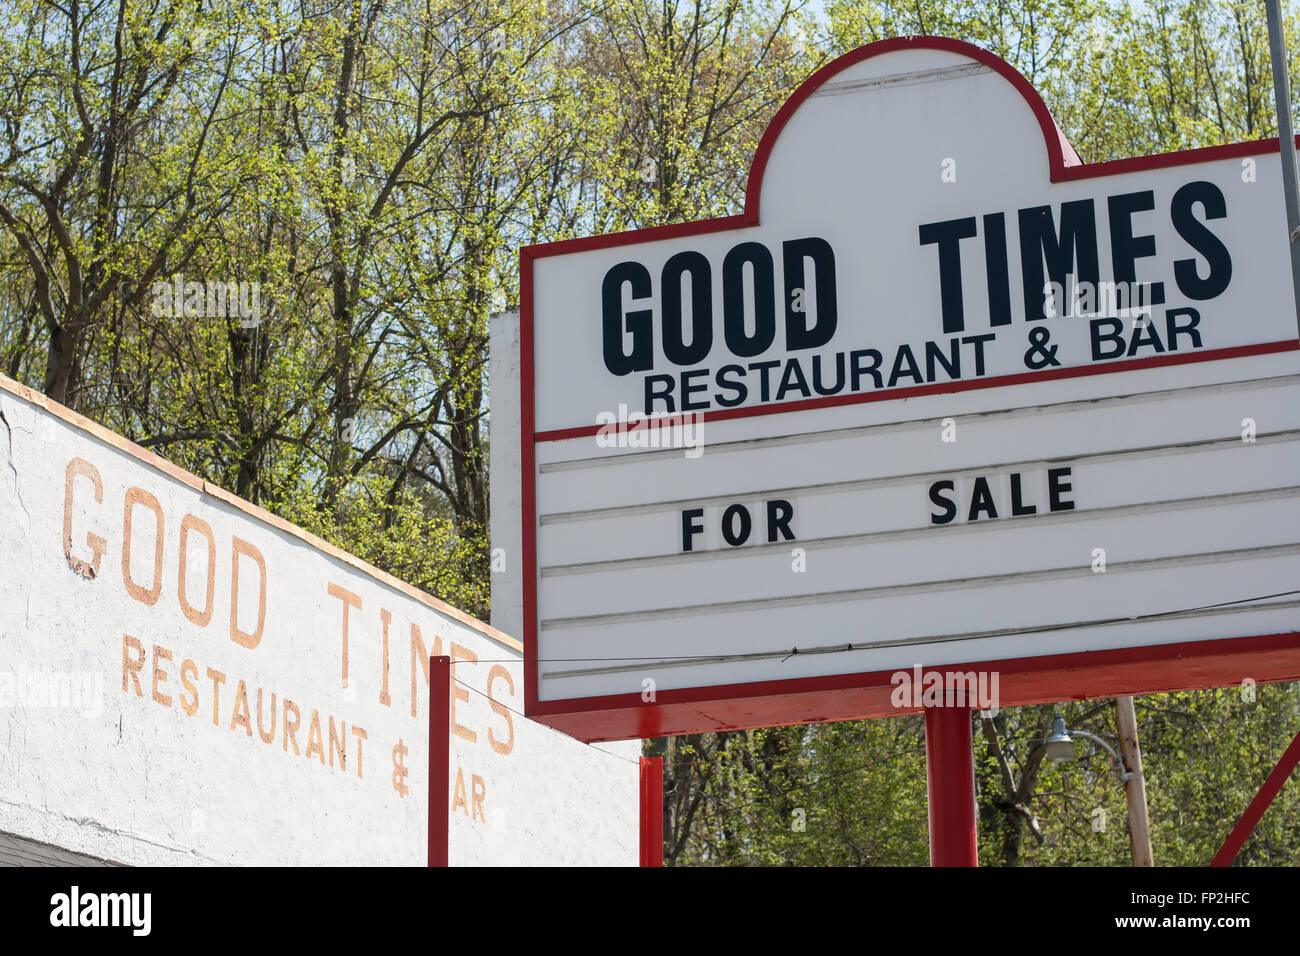 Good Times For Sale - Stock Image